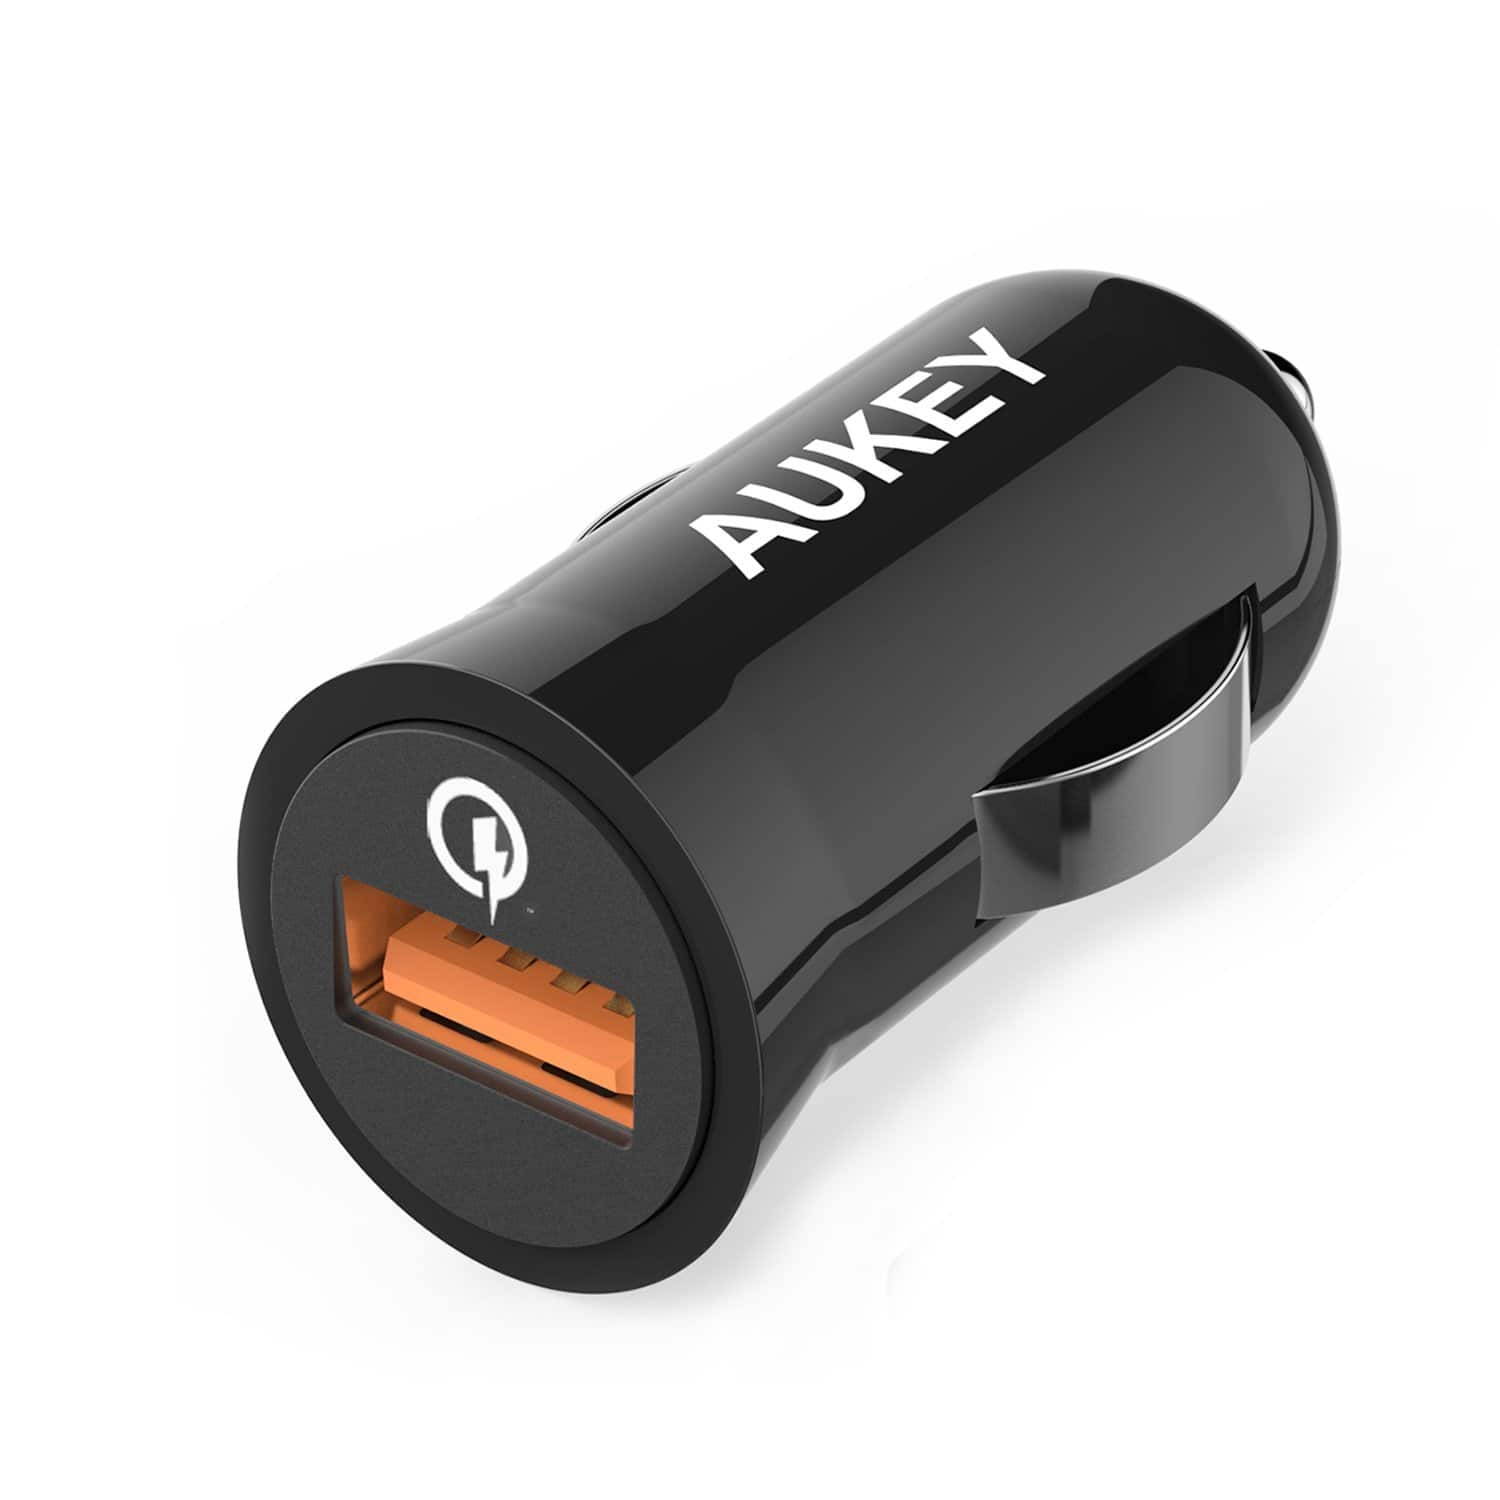 Quick Charge 2.0 AUKEY 18W USB Car Charger for LG G5/G4, Samsung Galaxy S8/S8+/S7/Edge, iPhone and More Quick Charge 2.0 AUKEY 18W USB Car Charger  $3.99 free ship